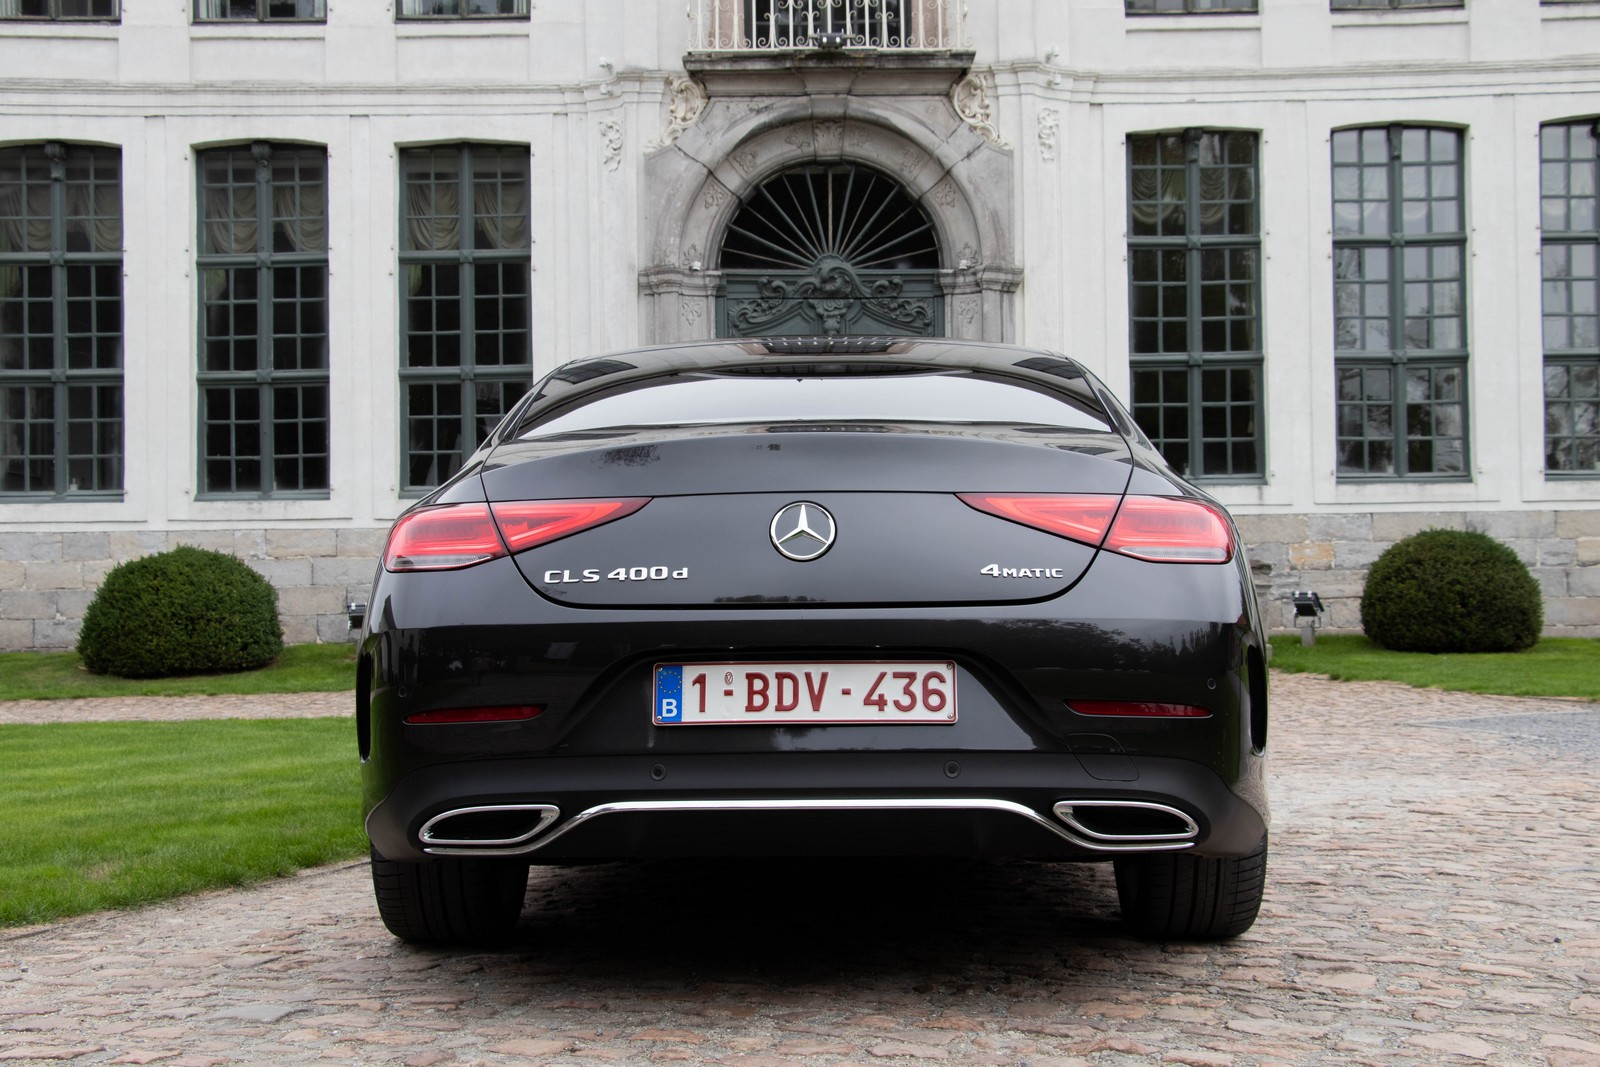 Mercedes-Benz CLS 400d Rear